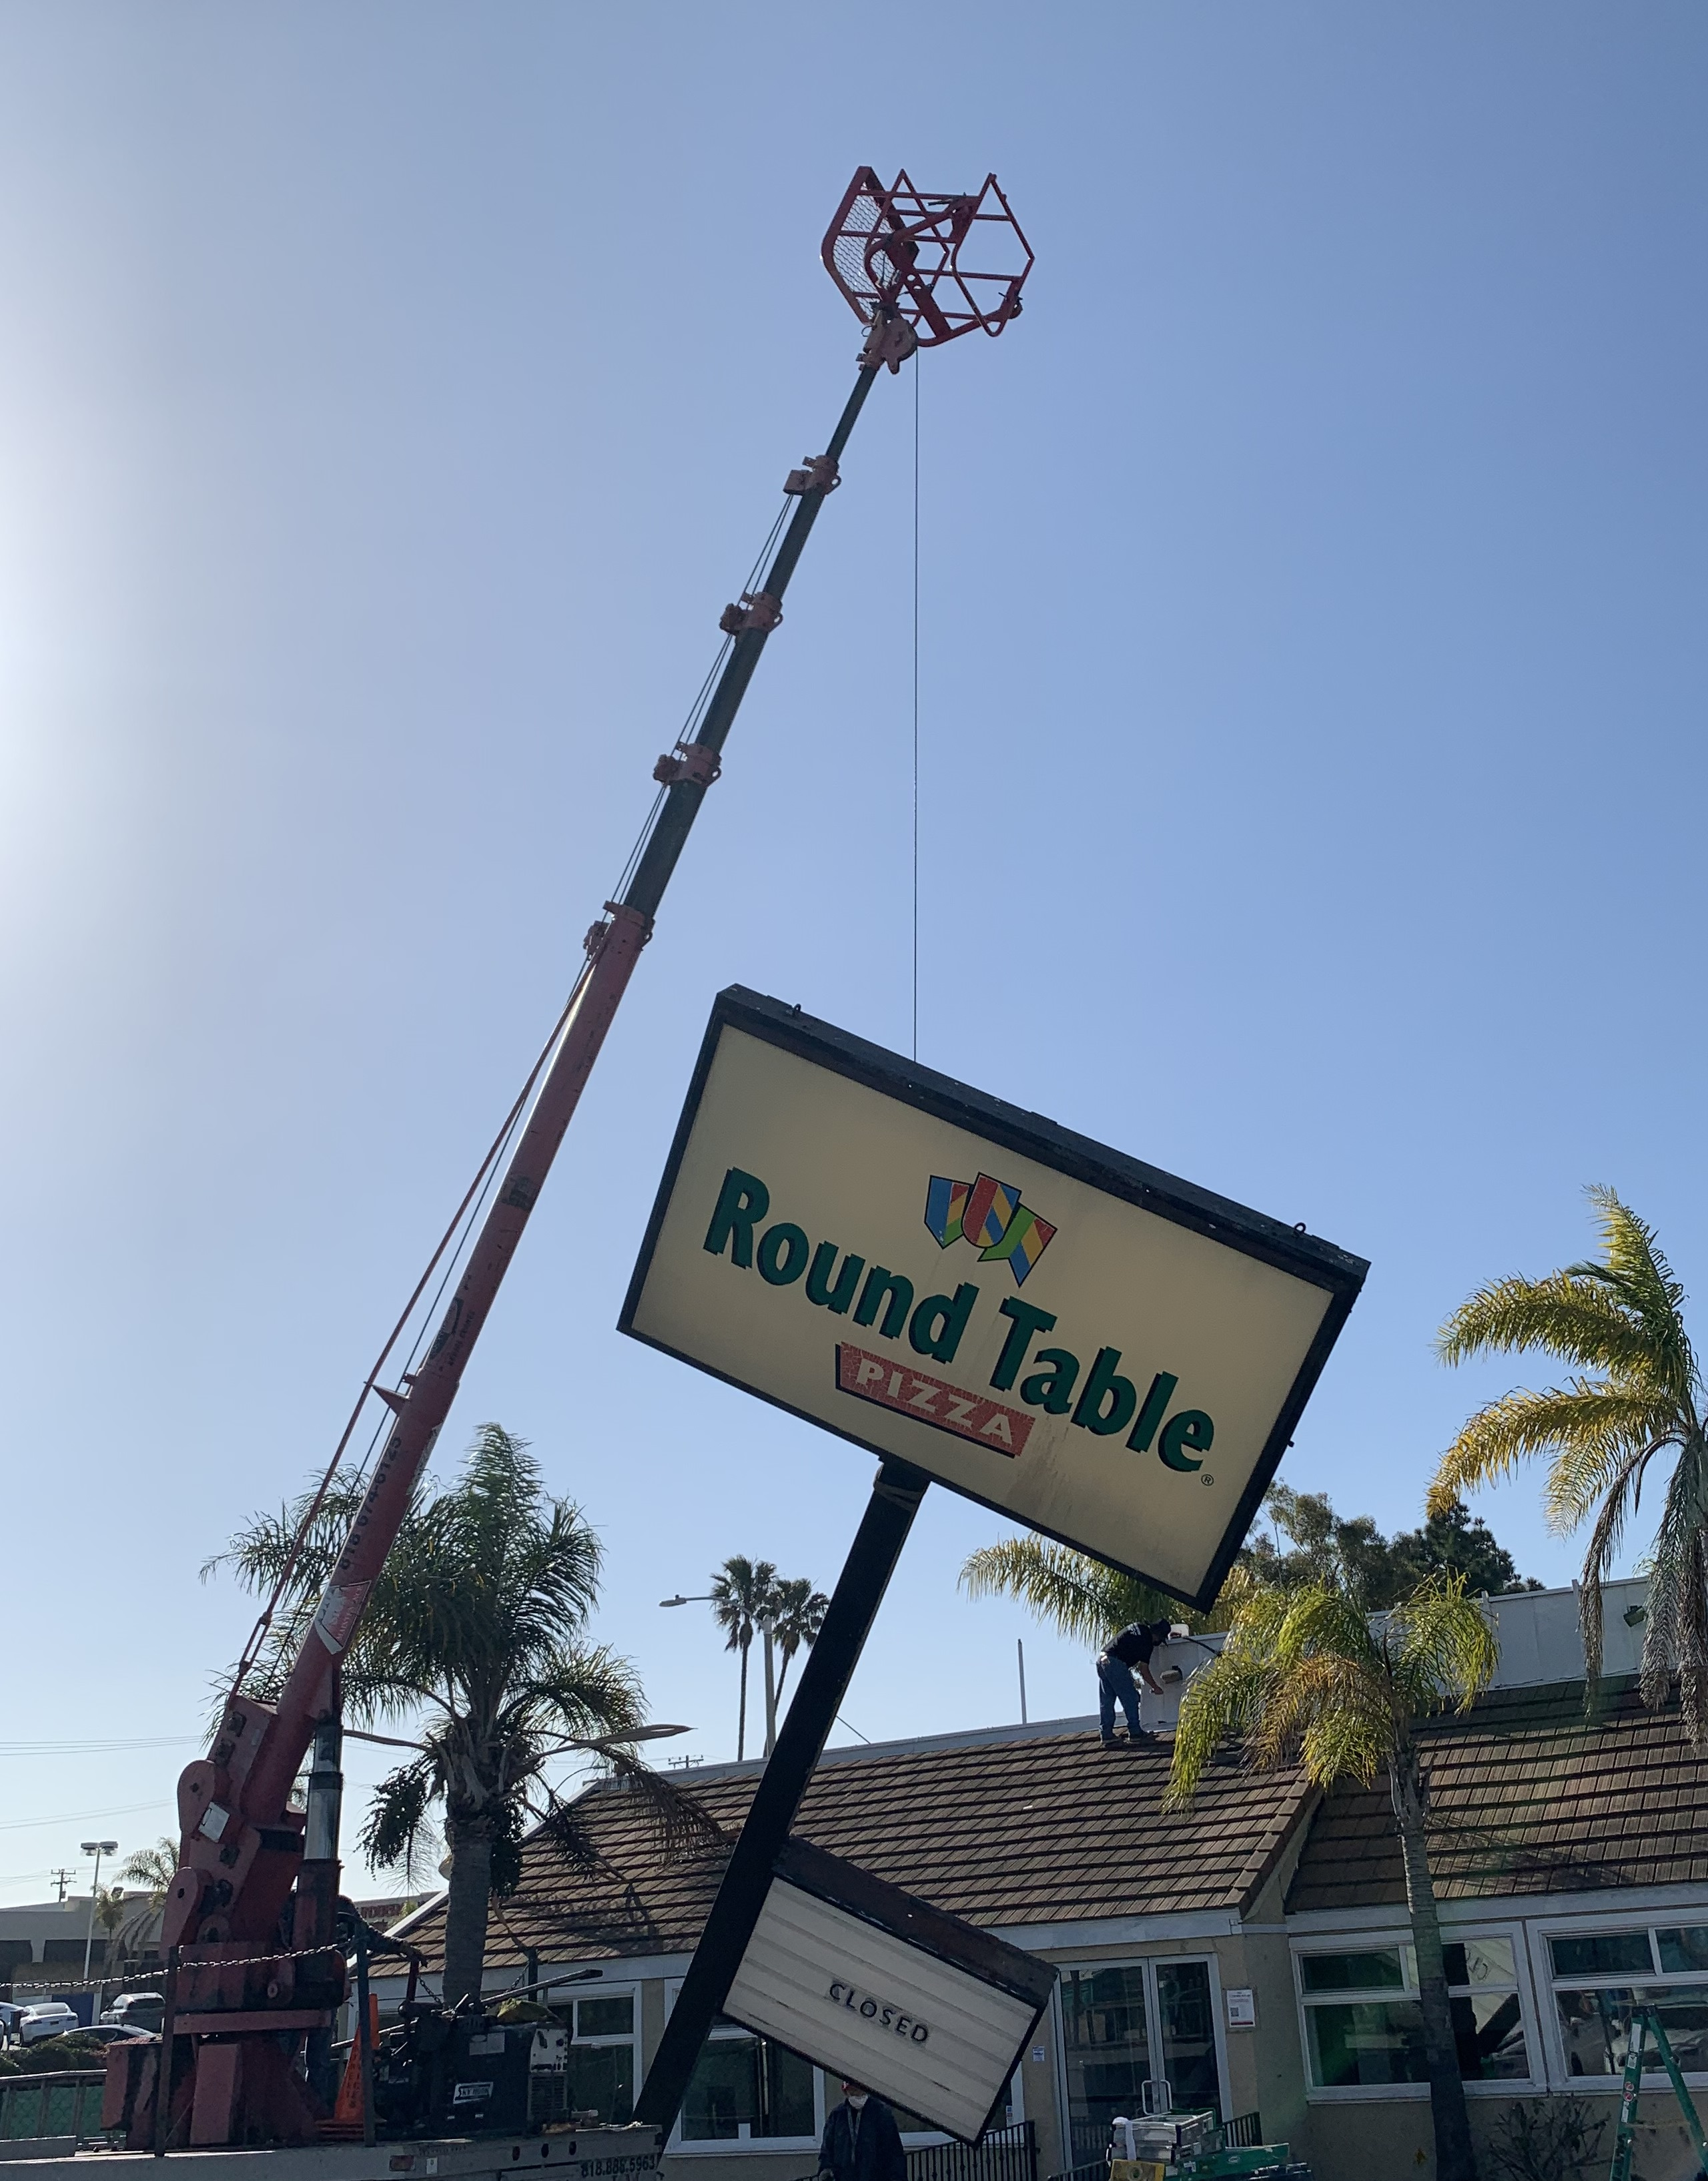 We removed Round Table Pizza's giant pole sign for Sketchers' world headquarters. Who better to provide sign removal service than a sign company?